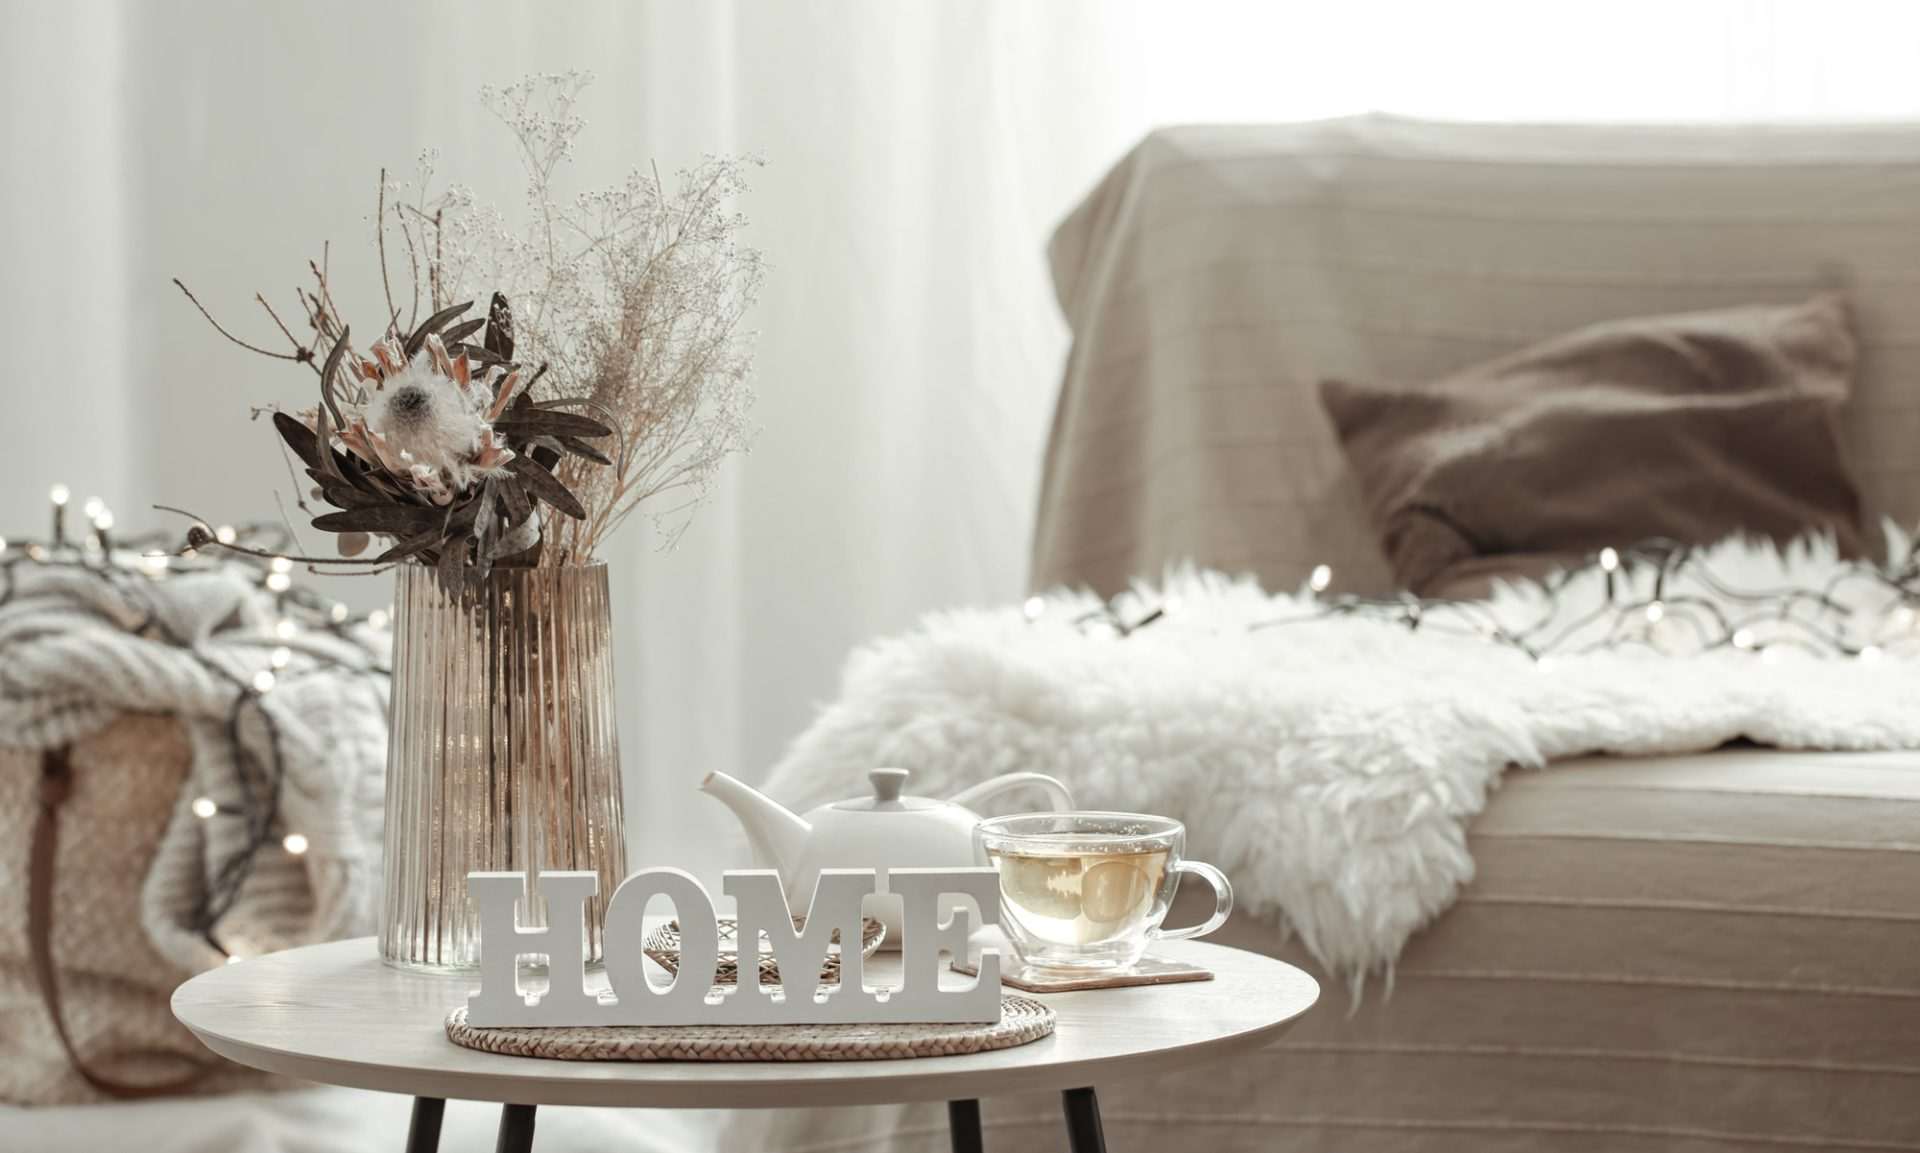 Home composition with decorative word home, tea and decor details.